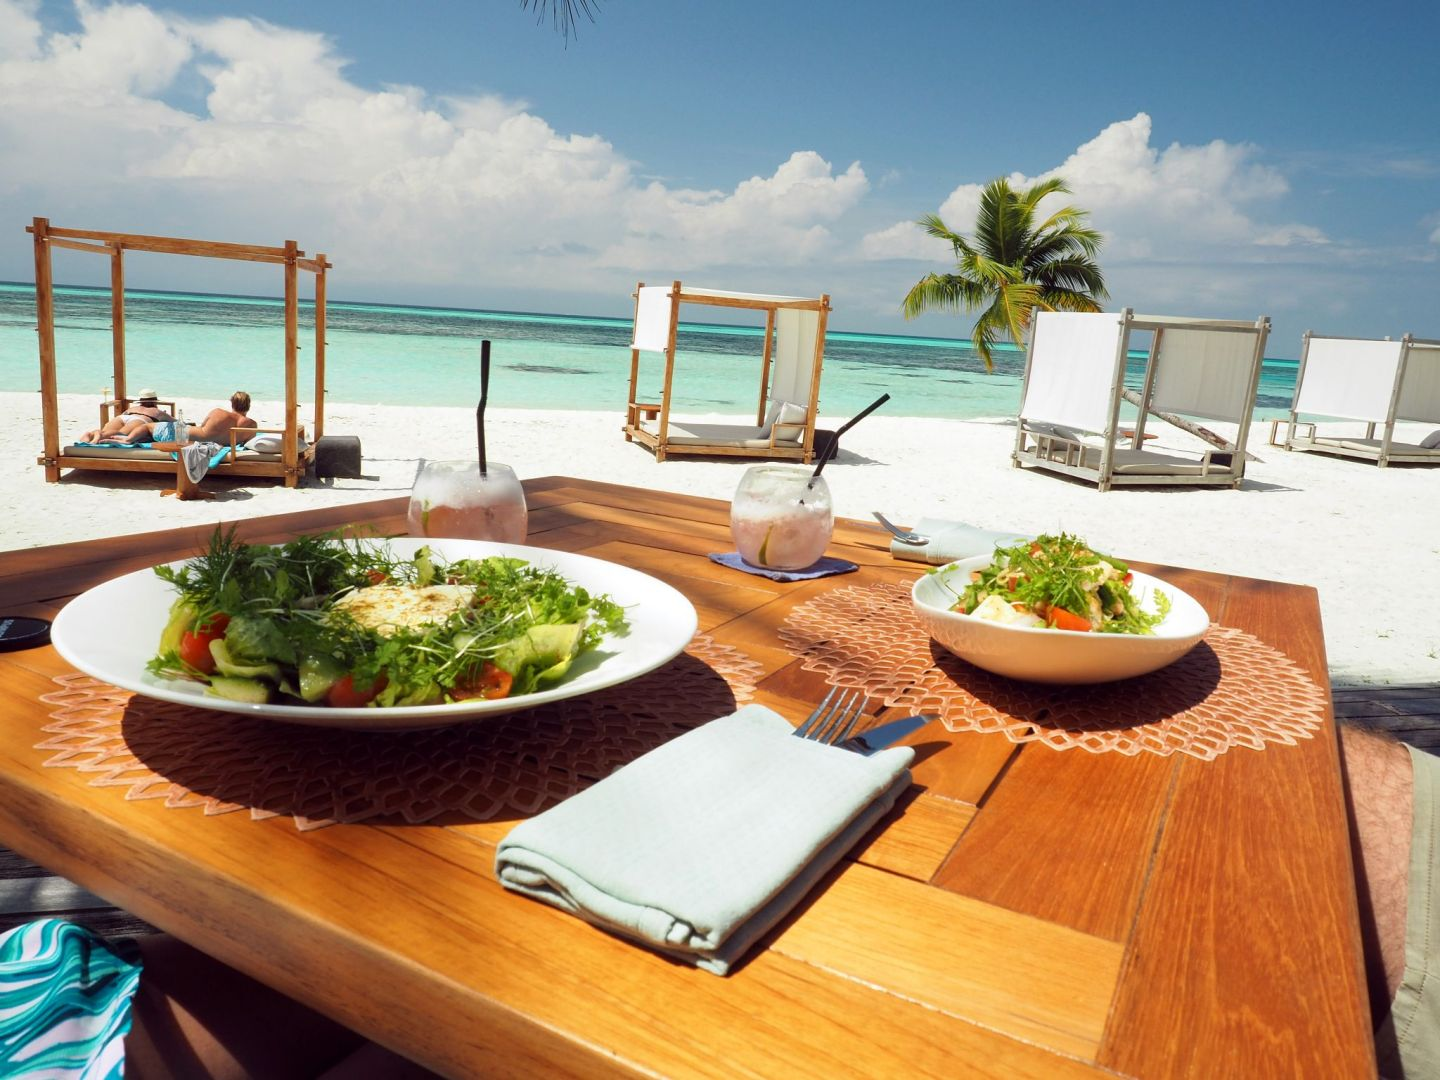 Salads at Senses LUX Maldives